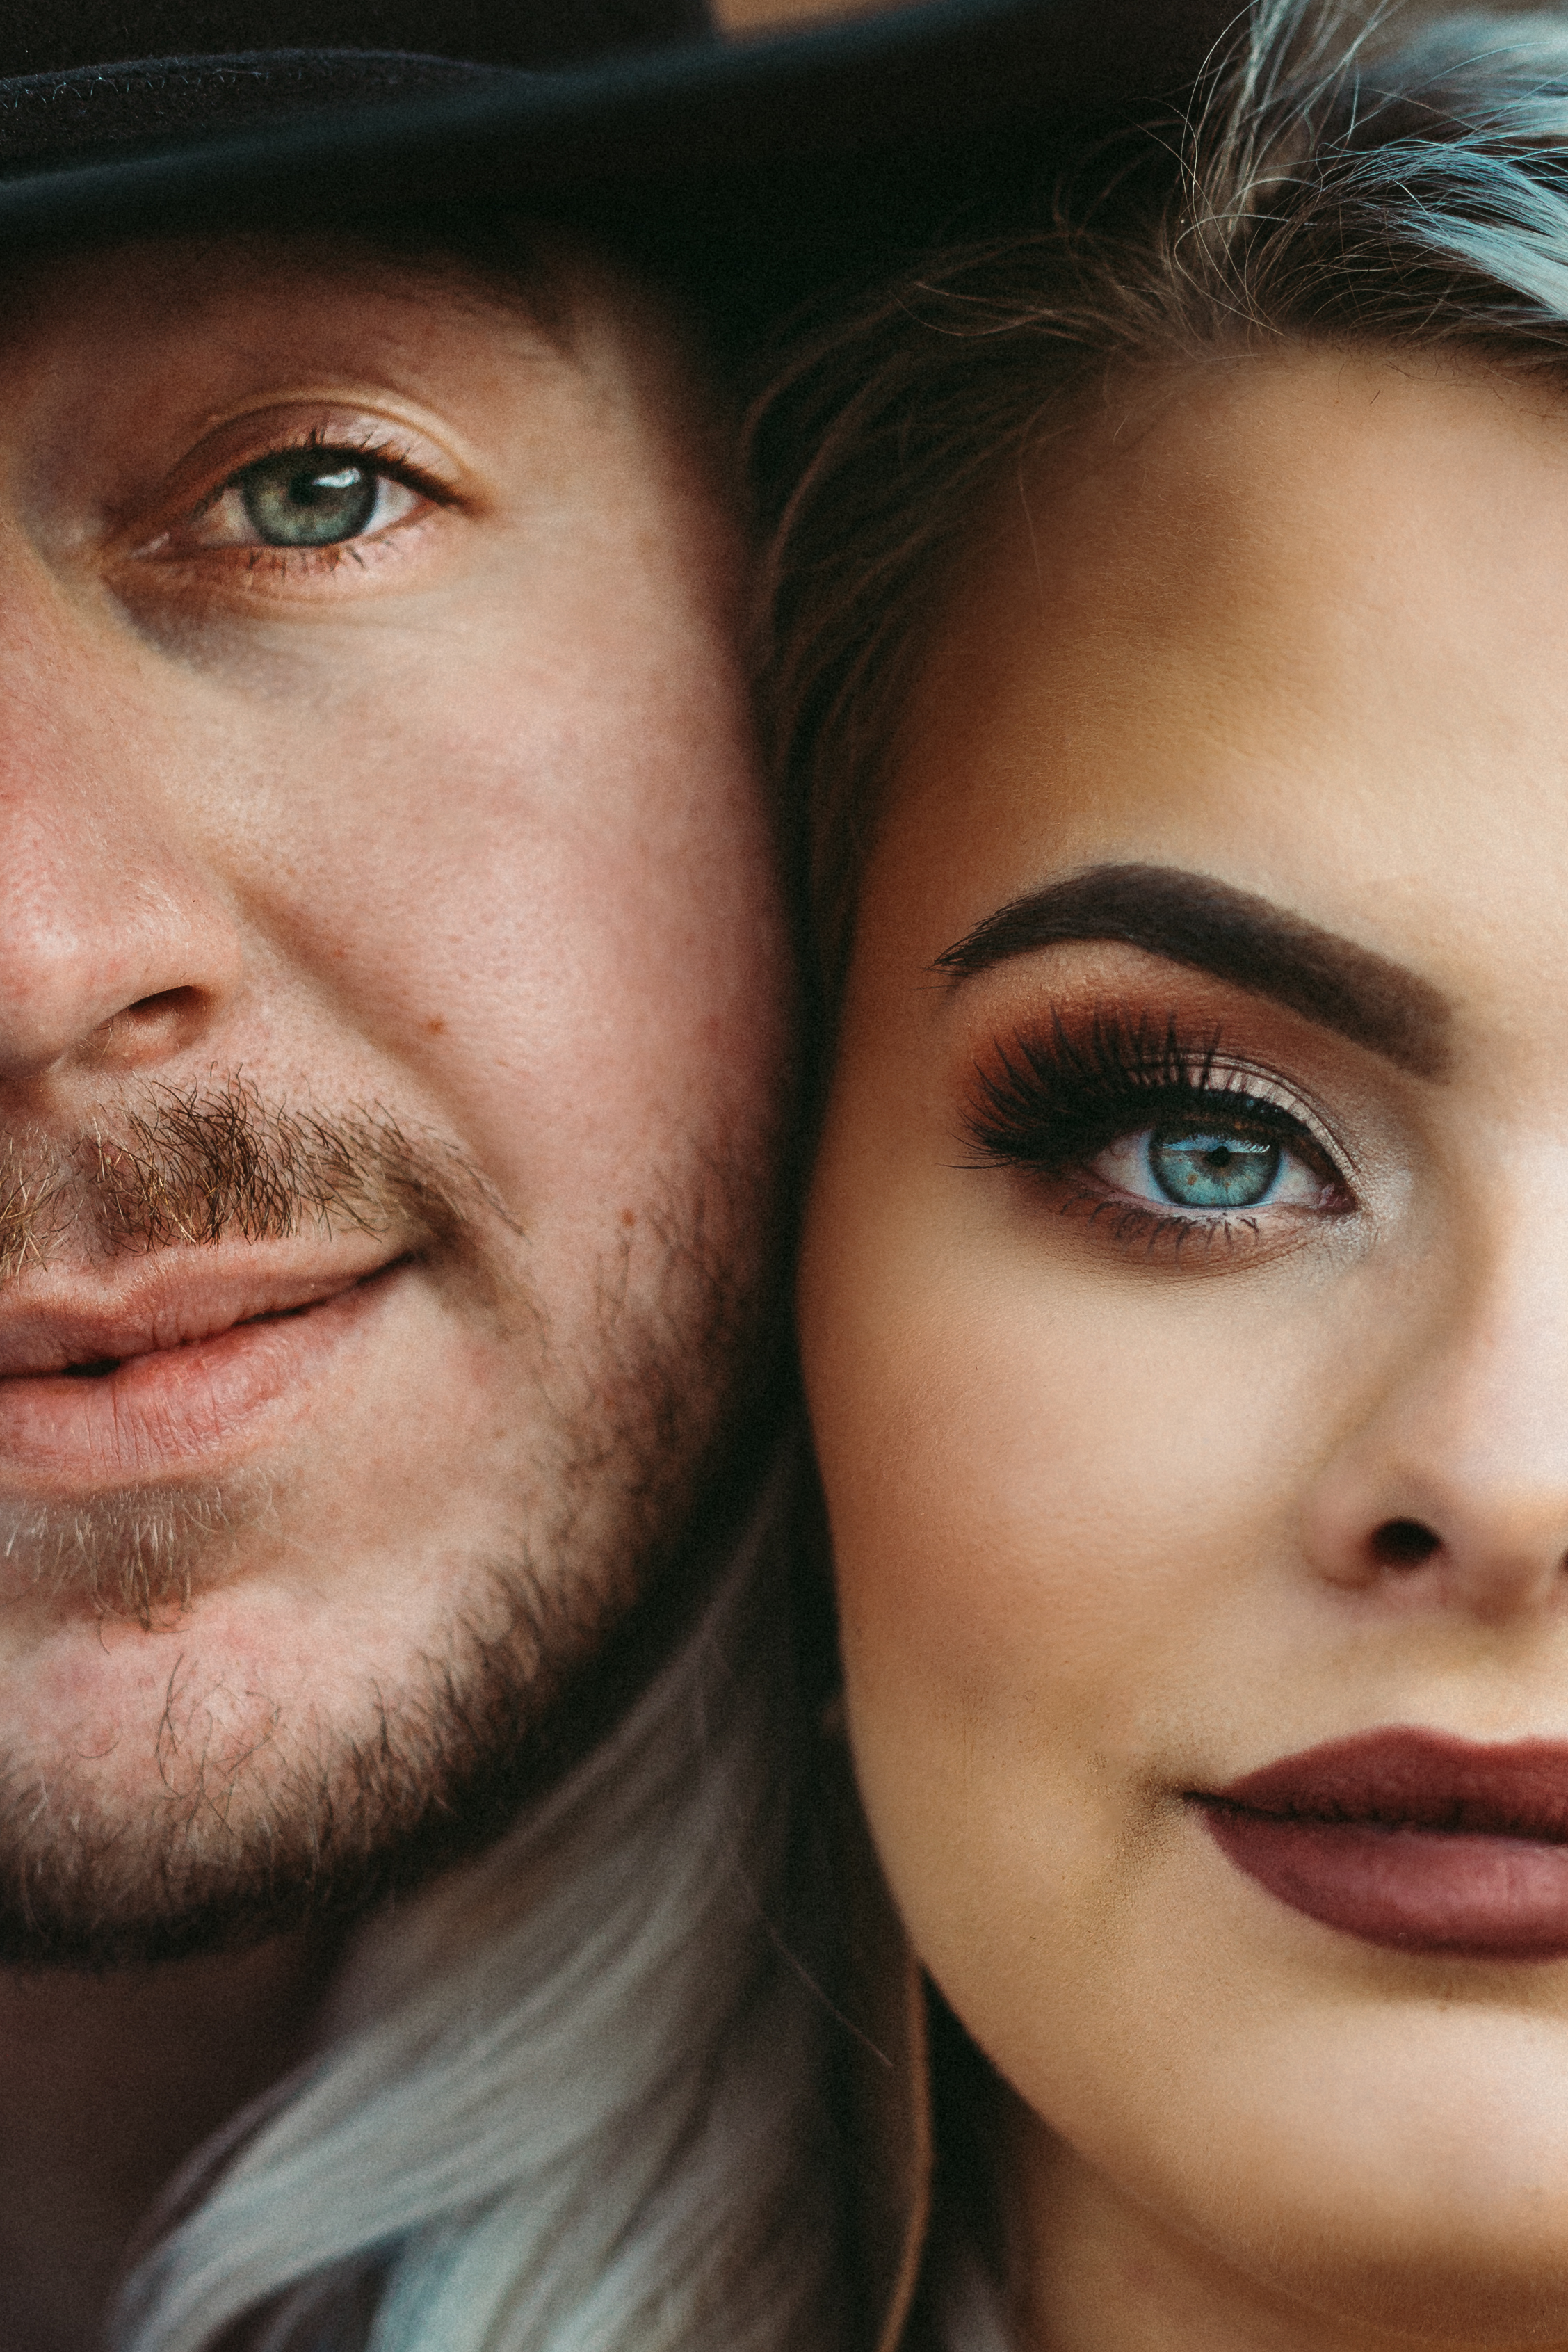 Side by side close up of engaged couple accenting their facial features #engagementphotos #engaged #personality #amarillotexas #engagementphotographer #lifestylephotos #amarillophotographer #locationchoice #texasengagementphotos #engagment #tealawardphotography #westernstyle